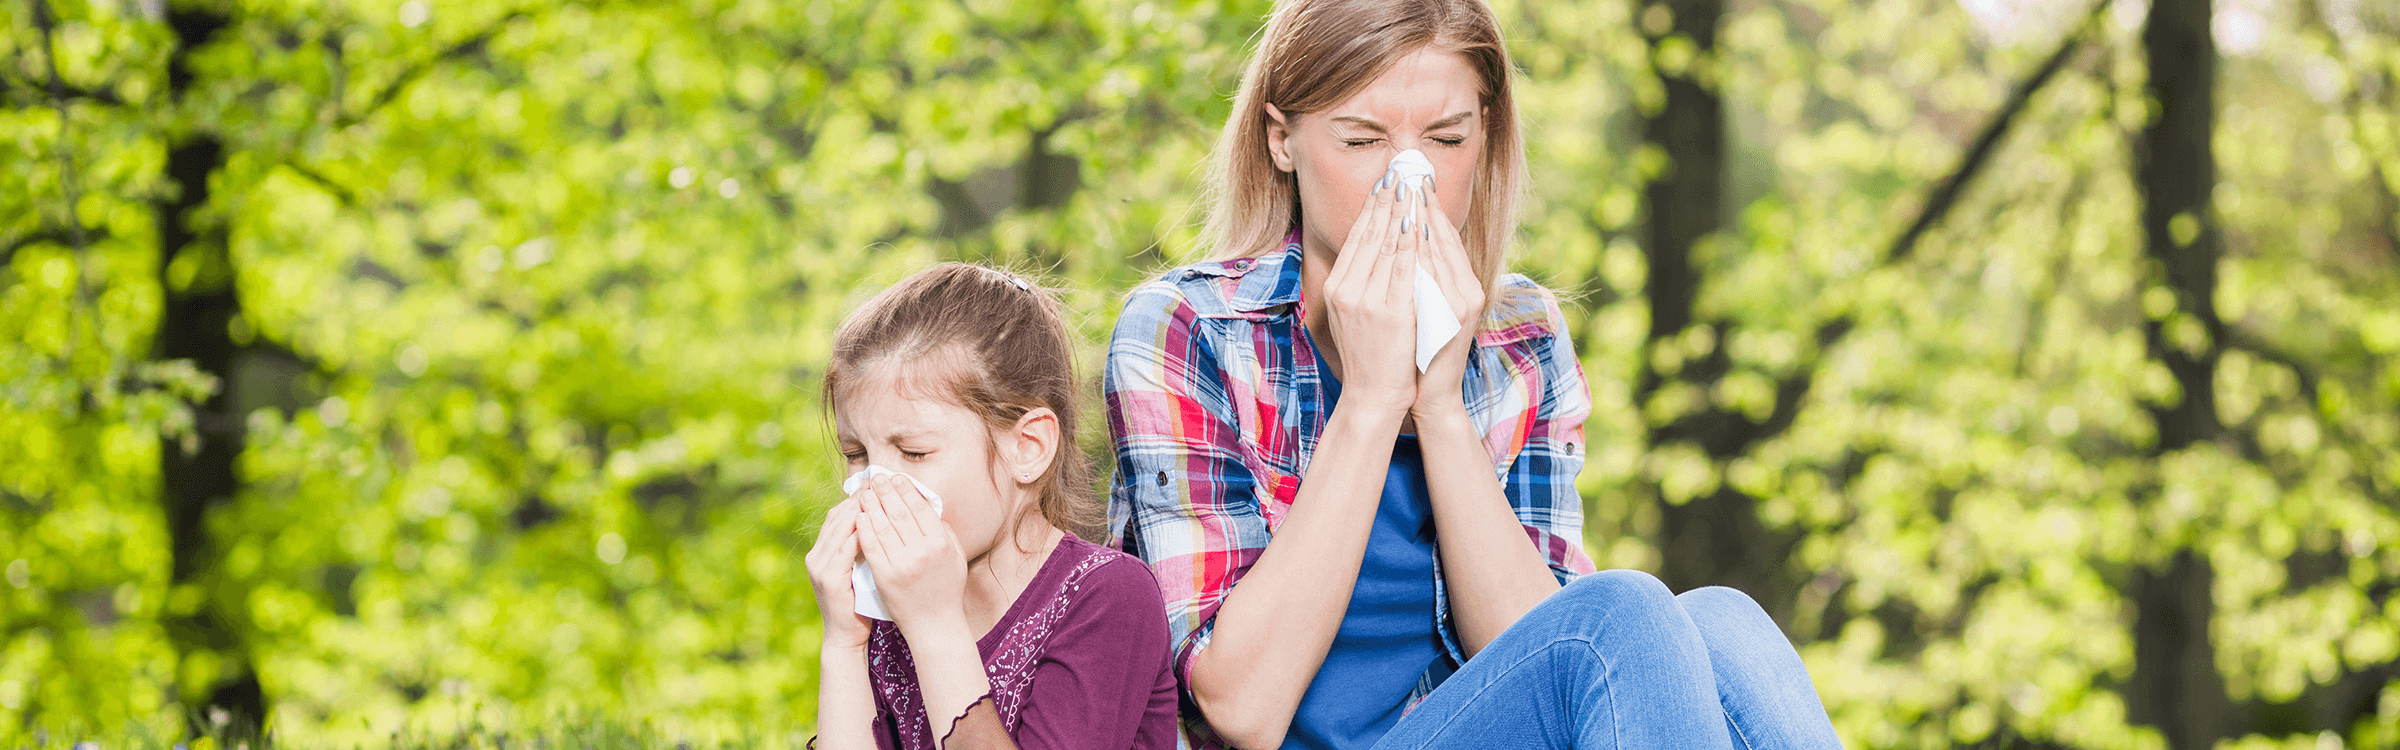 Attention! Time of Allergic Rhinitis: Feel good with Allergy therapy